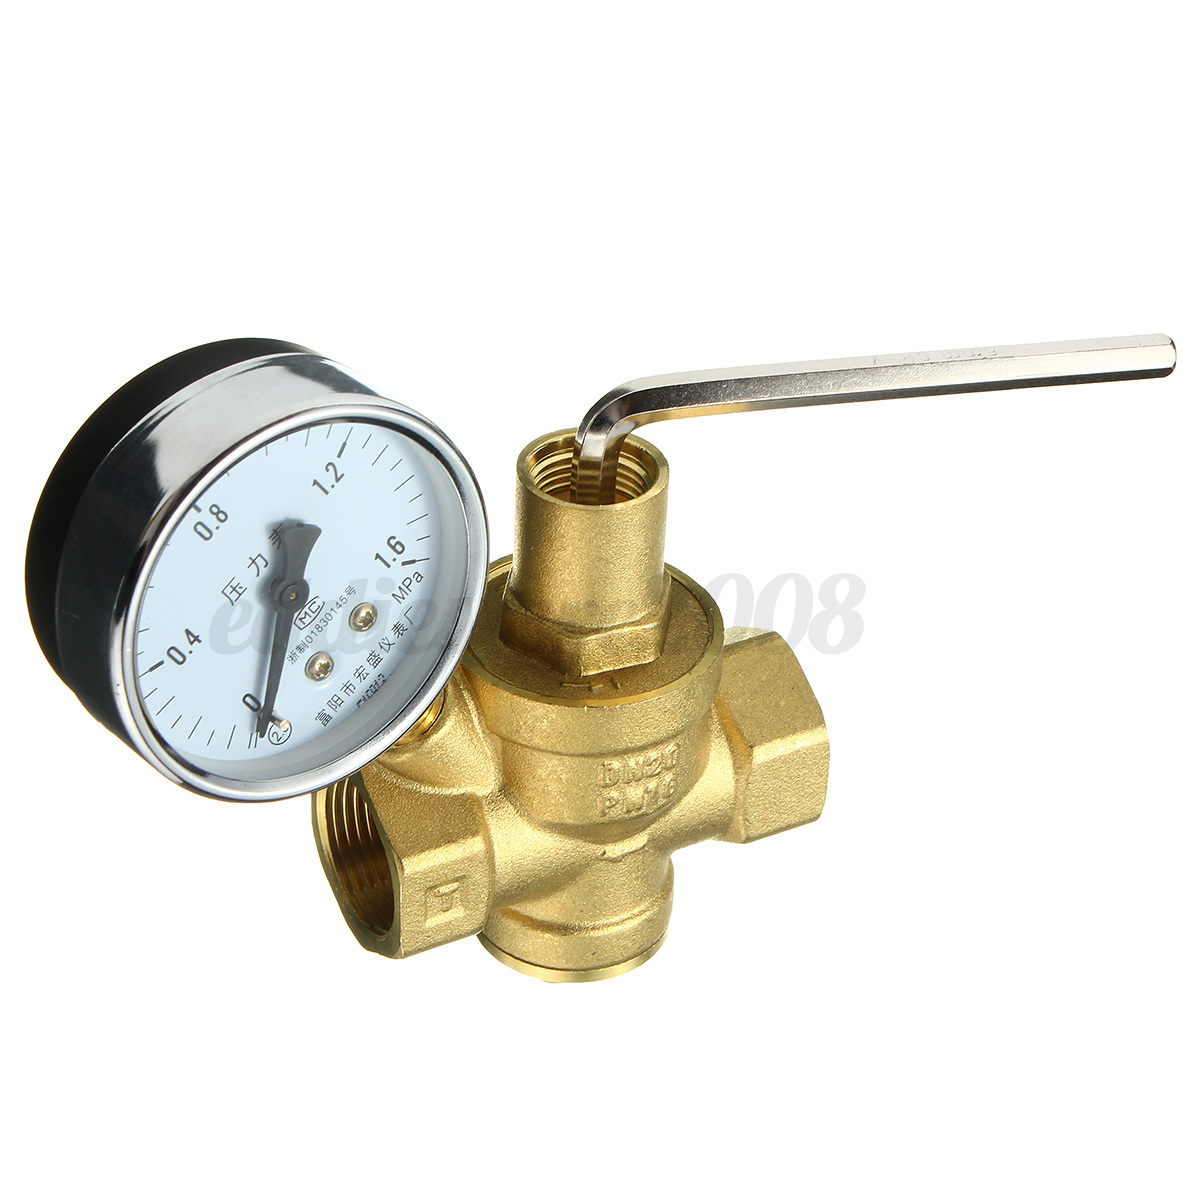 dn20 3 4 39 39 bspp brass water pressure reducing valve with gauge flow adjustable ebay. Black Bedroom Furniture Sets. Home Design Ideas